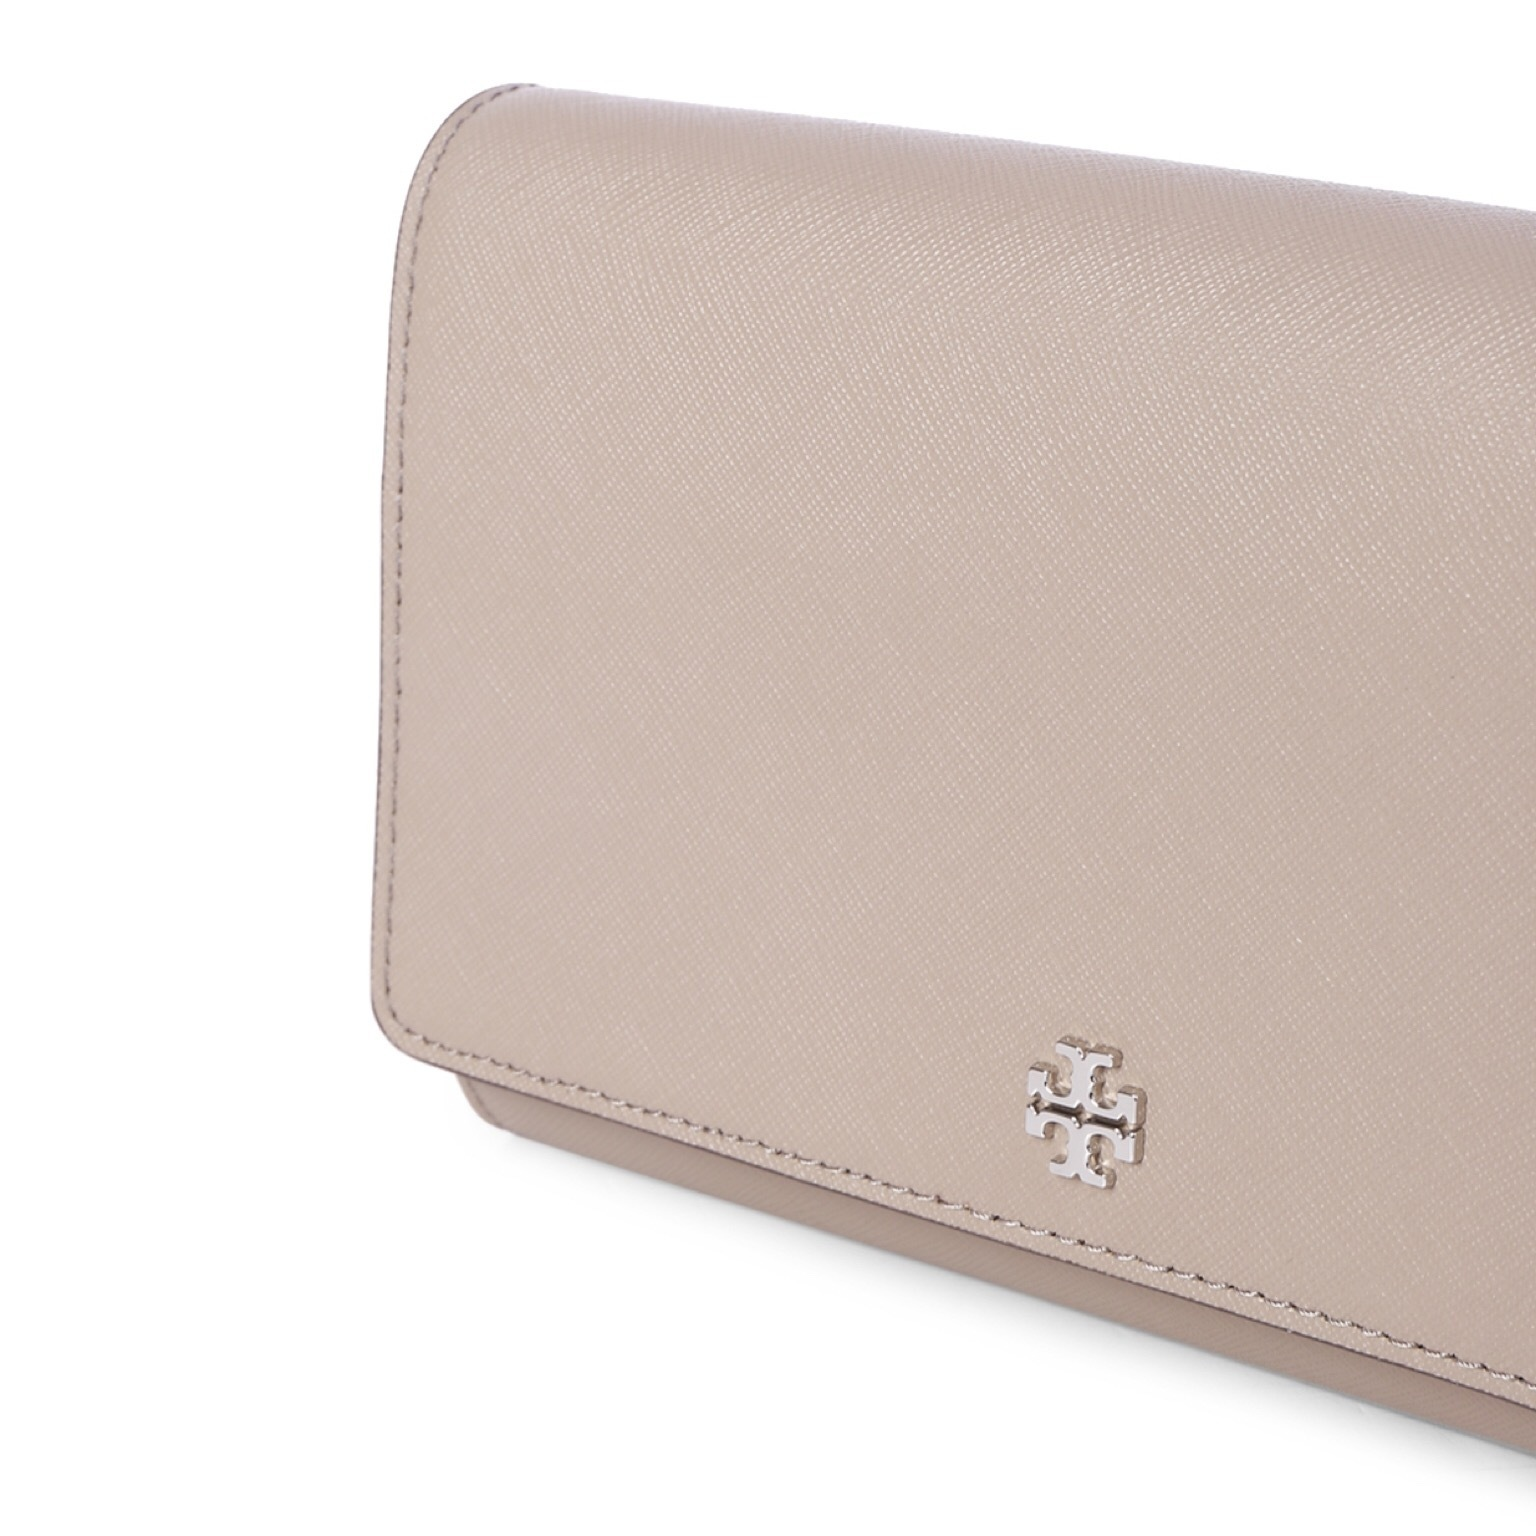 TORY BURCH Chain Wallet 関税送料込